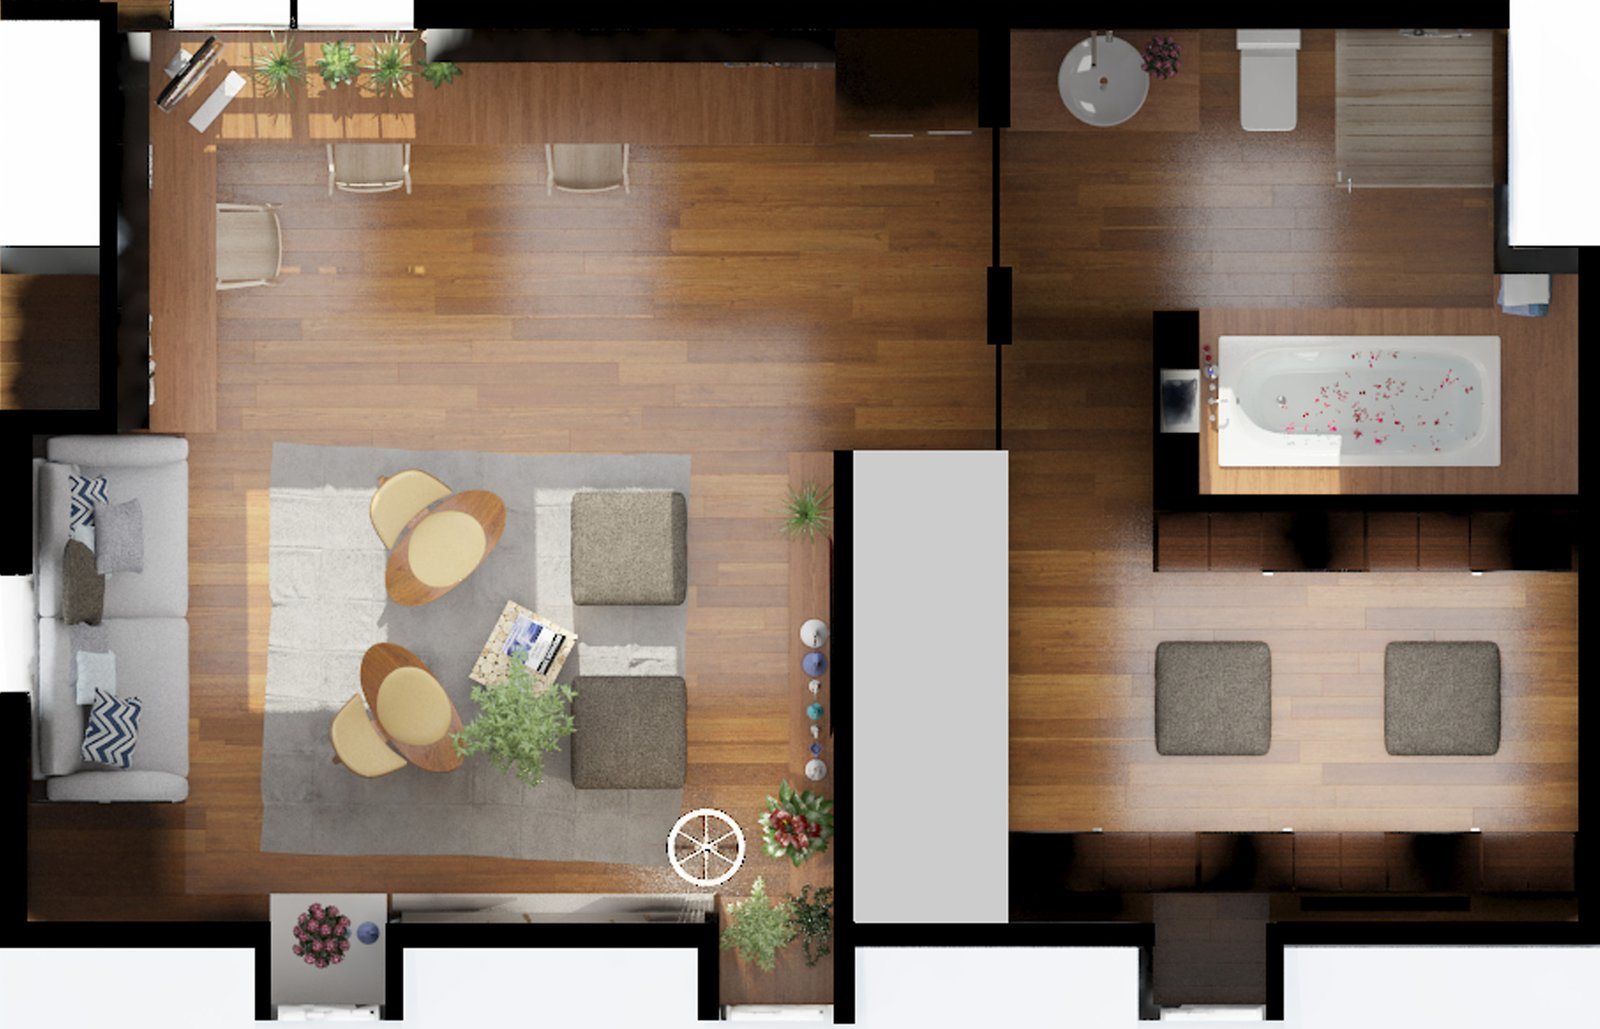 Top plan view  Inspired Flexible Attic Space